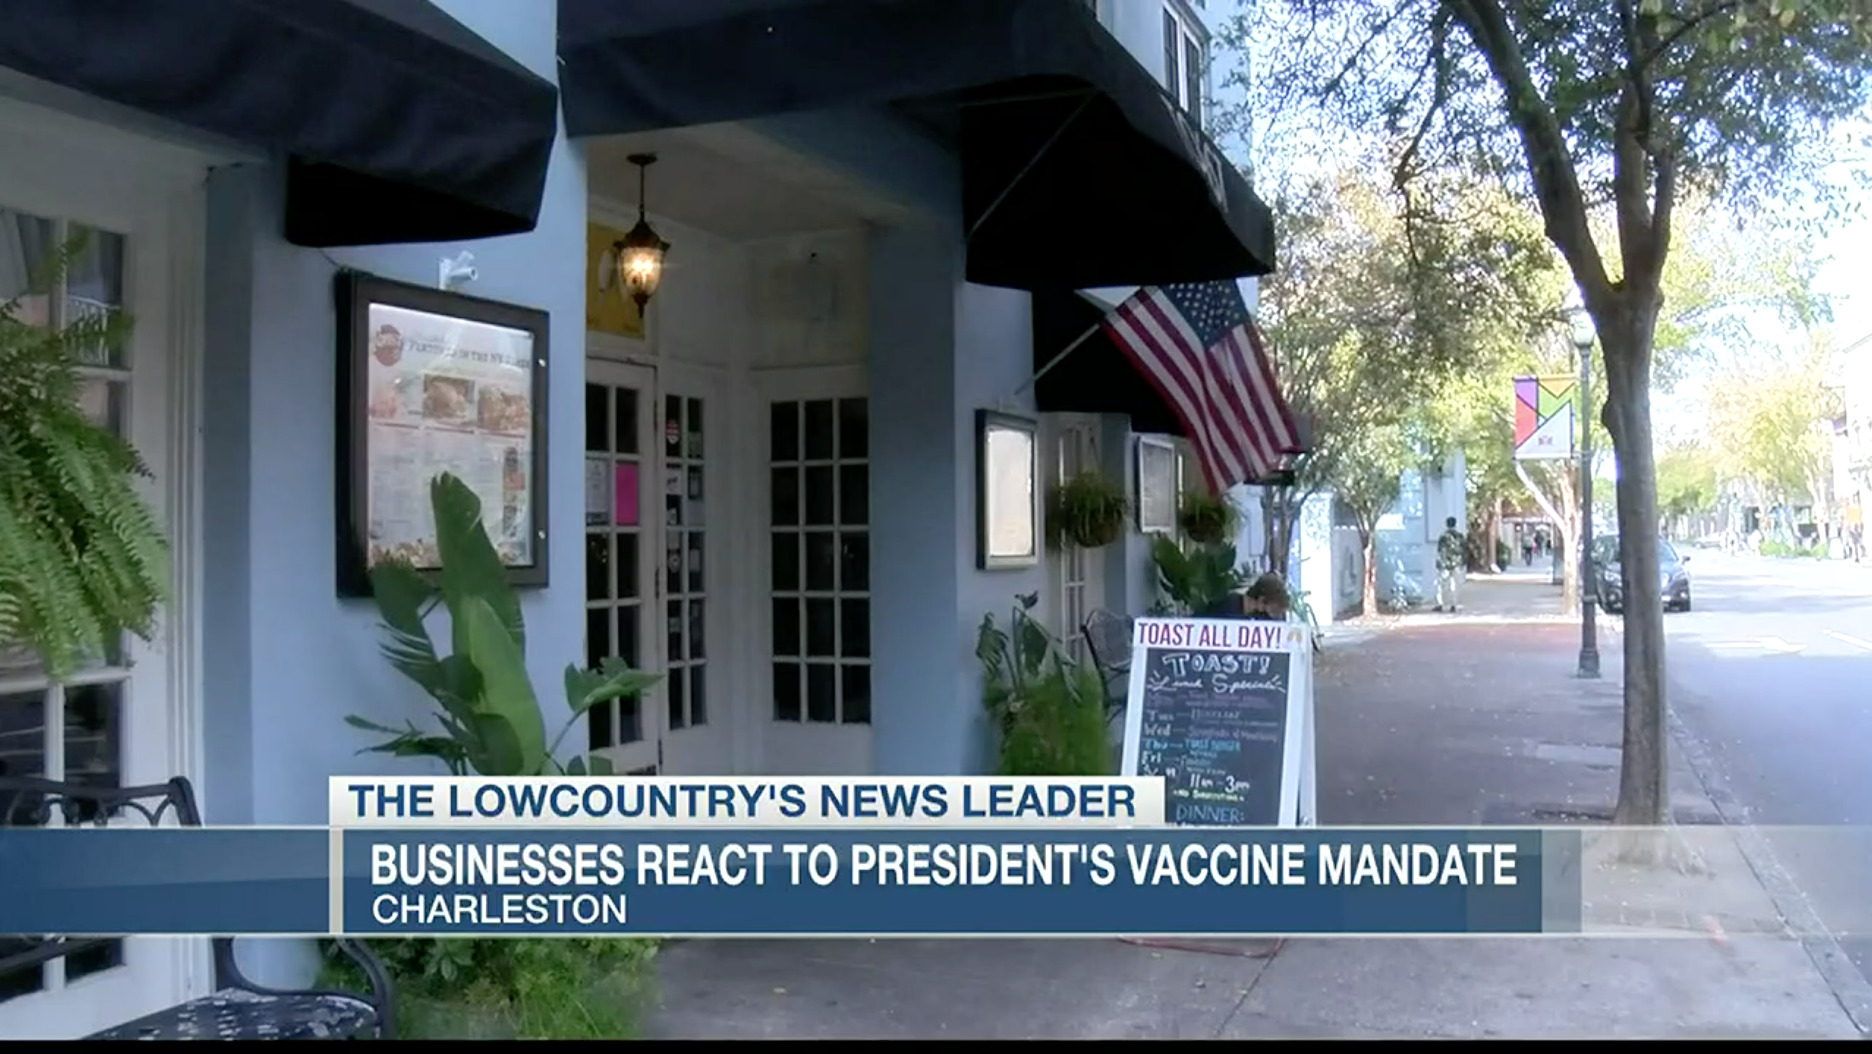 Charleston Hospitality Group's CMO speaks on Covid-19 vaccination policies